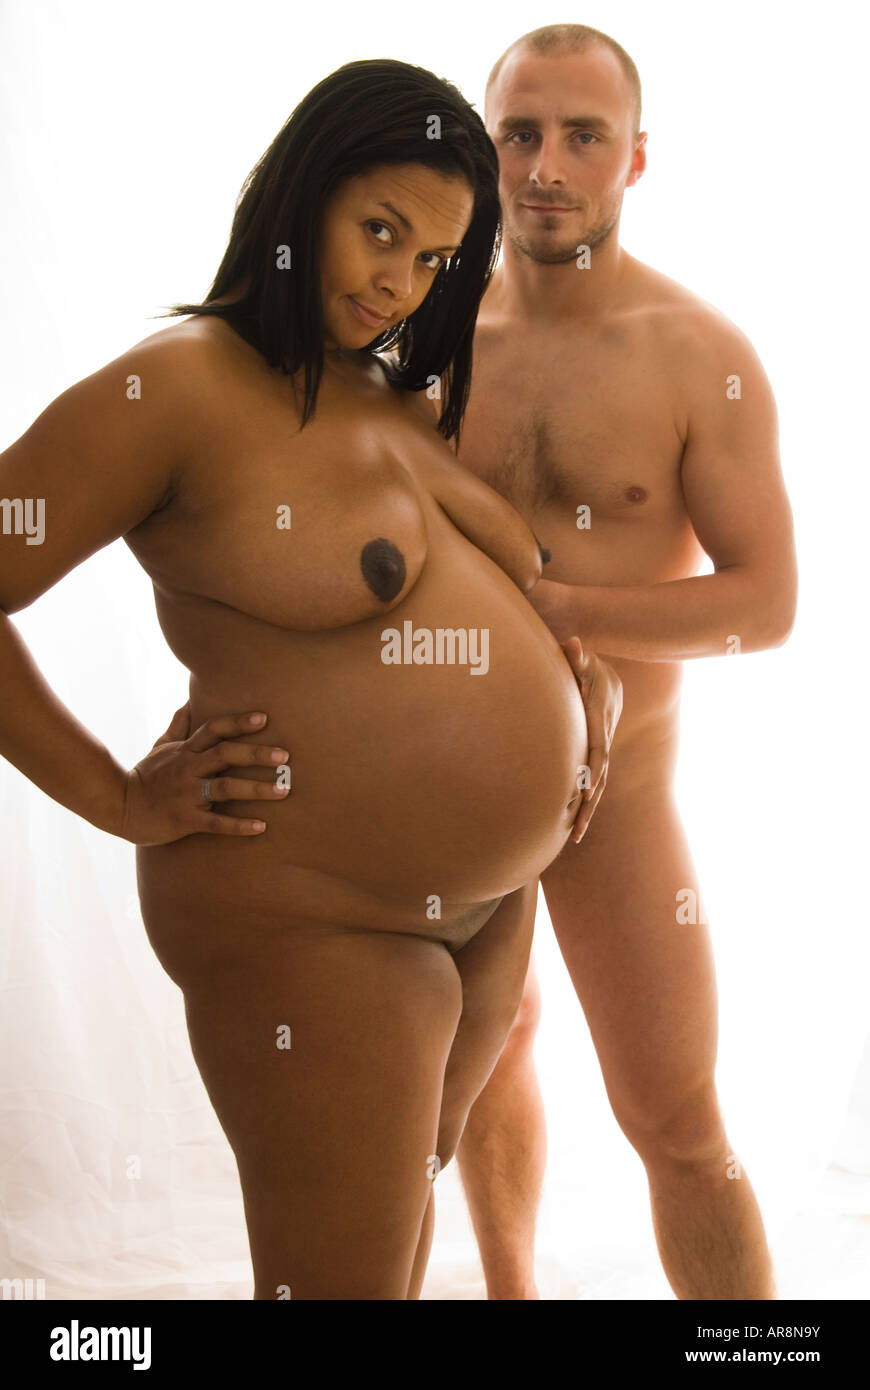 Pregnant Naked Black Woman And White Partner